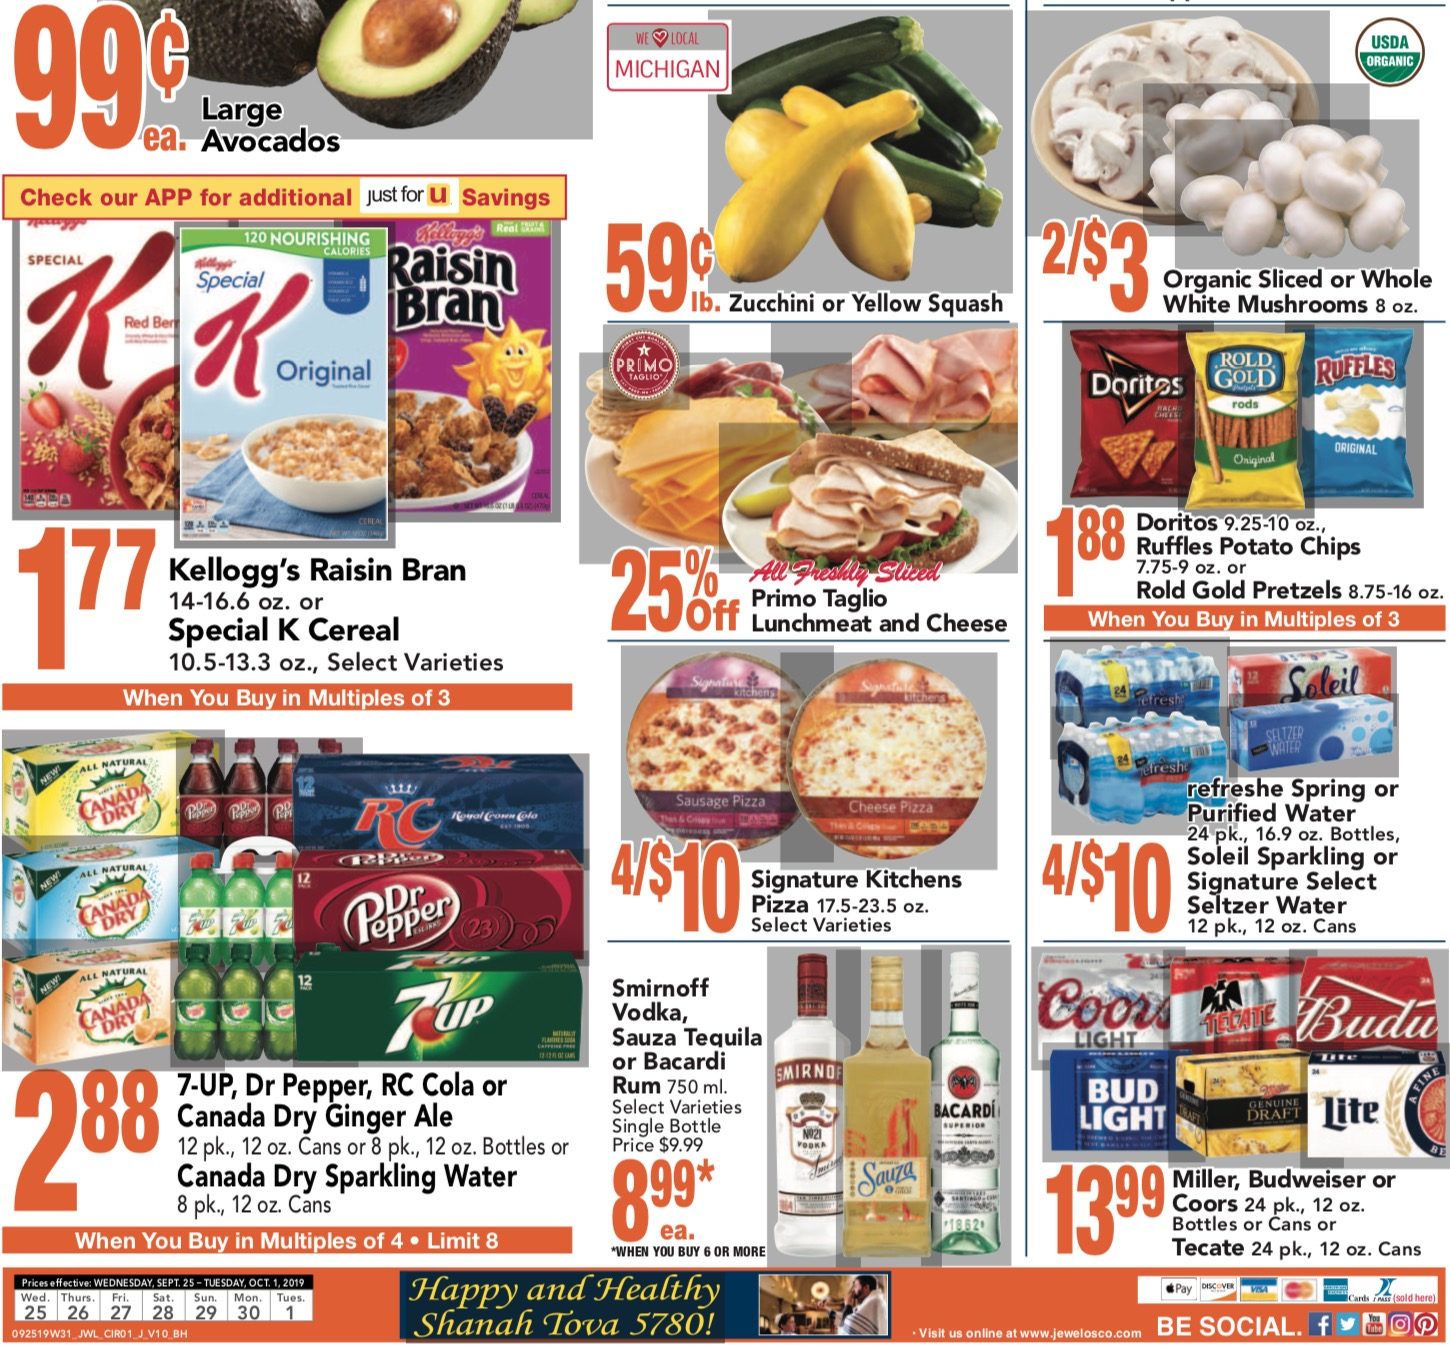 Jewel Osco Weekly Ad (10/2/19 - 10/8/19) Early Preview